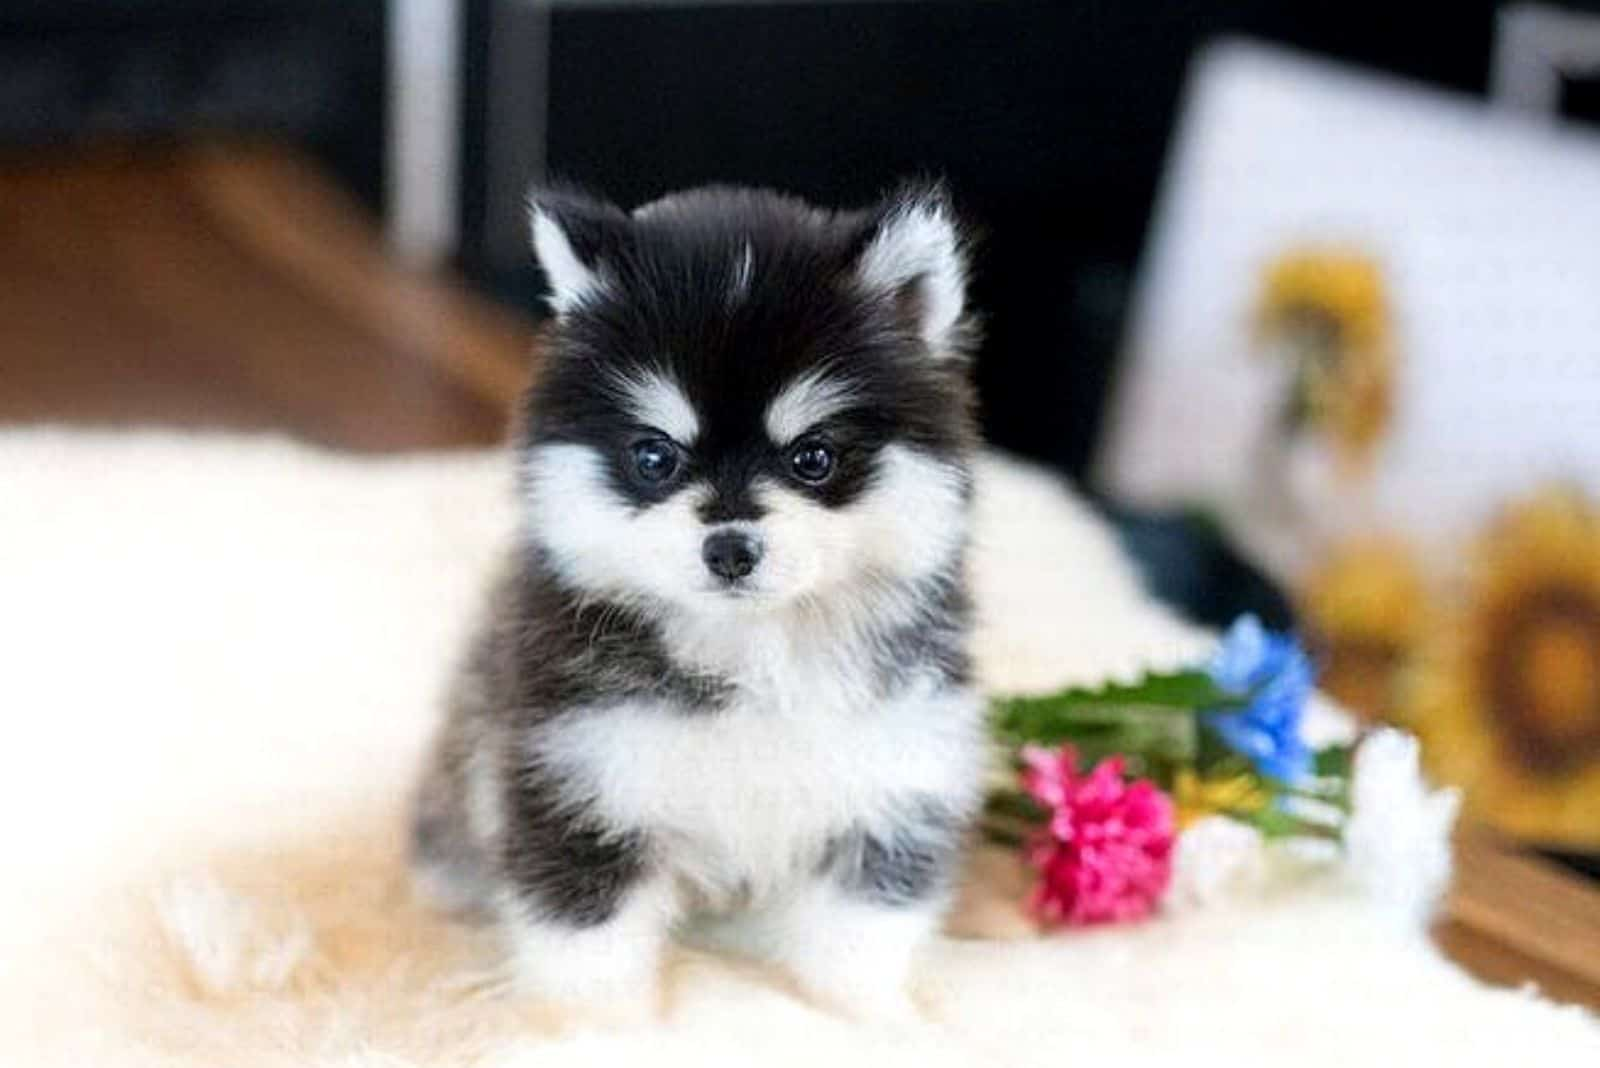 Teacup Pomsky puppy sitting at home on the table